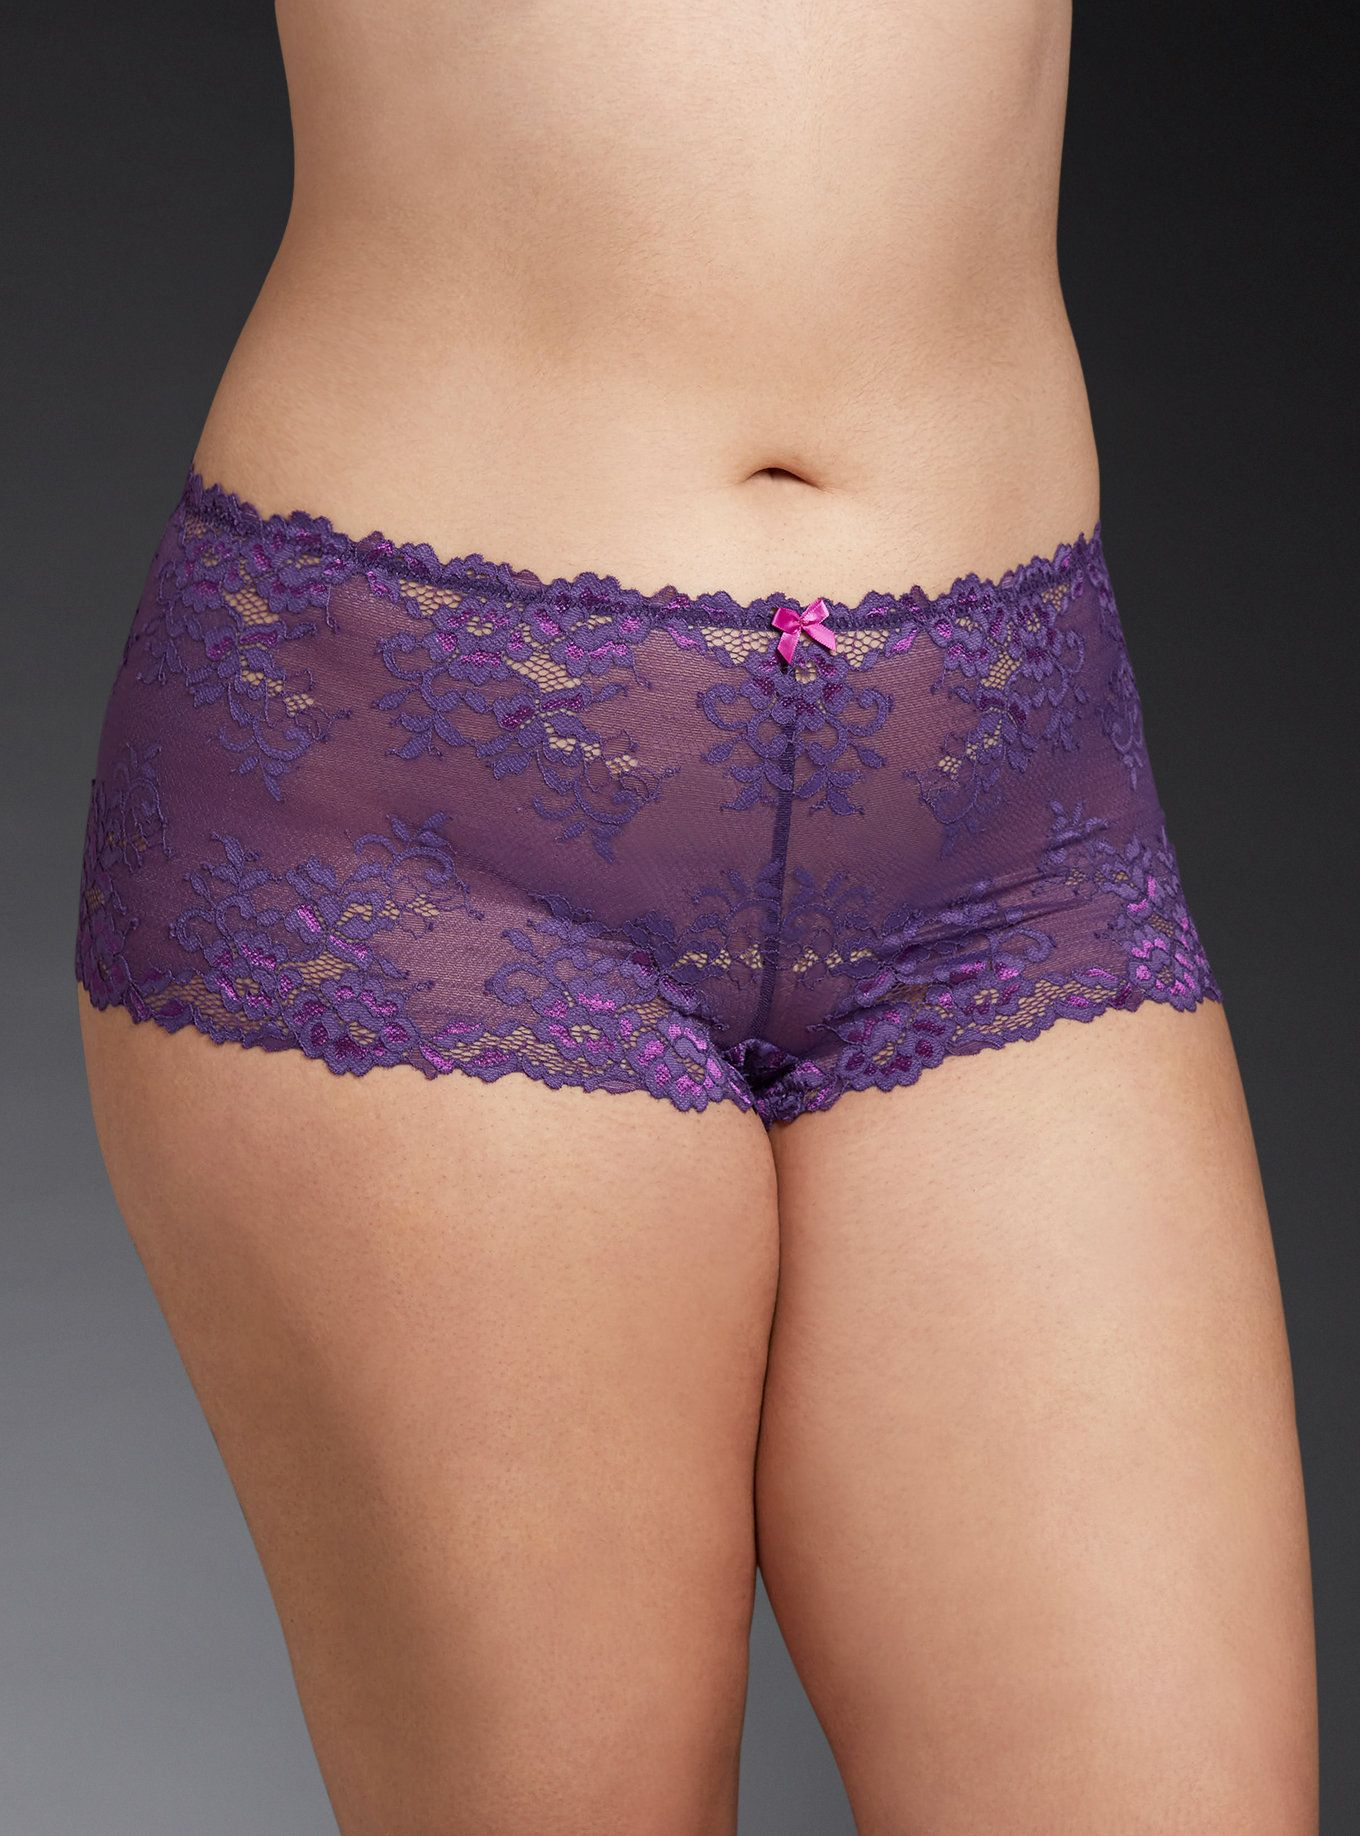 Girls in panties plus Pin On Curvy Girl Lingerie That S Actually Cute